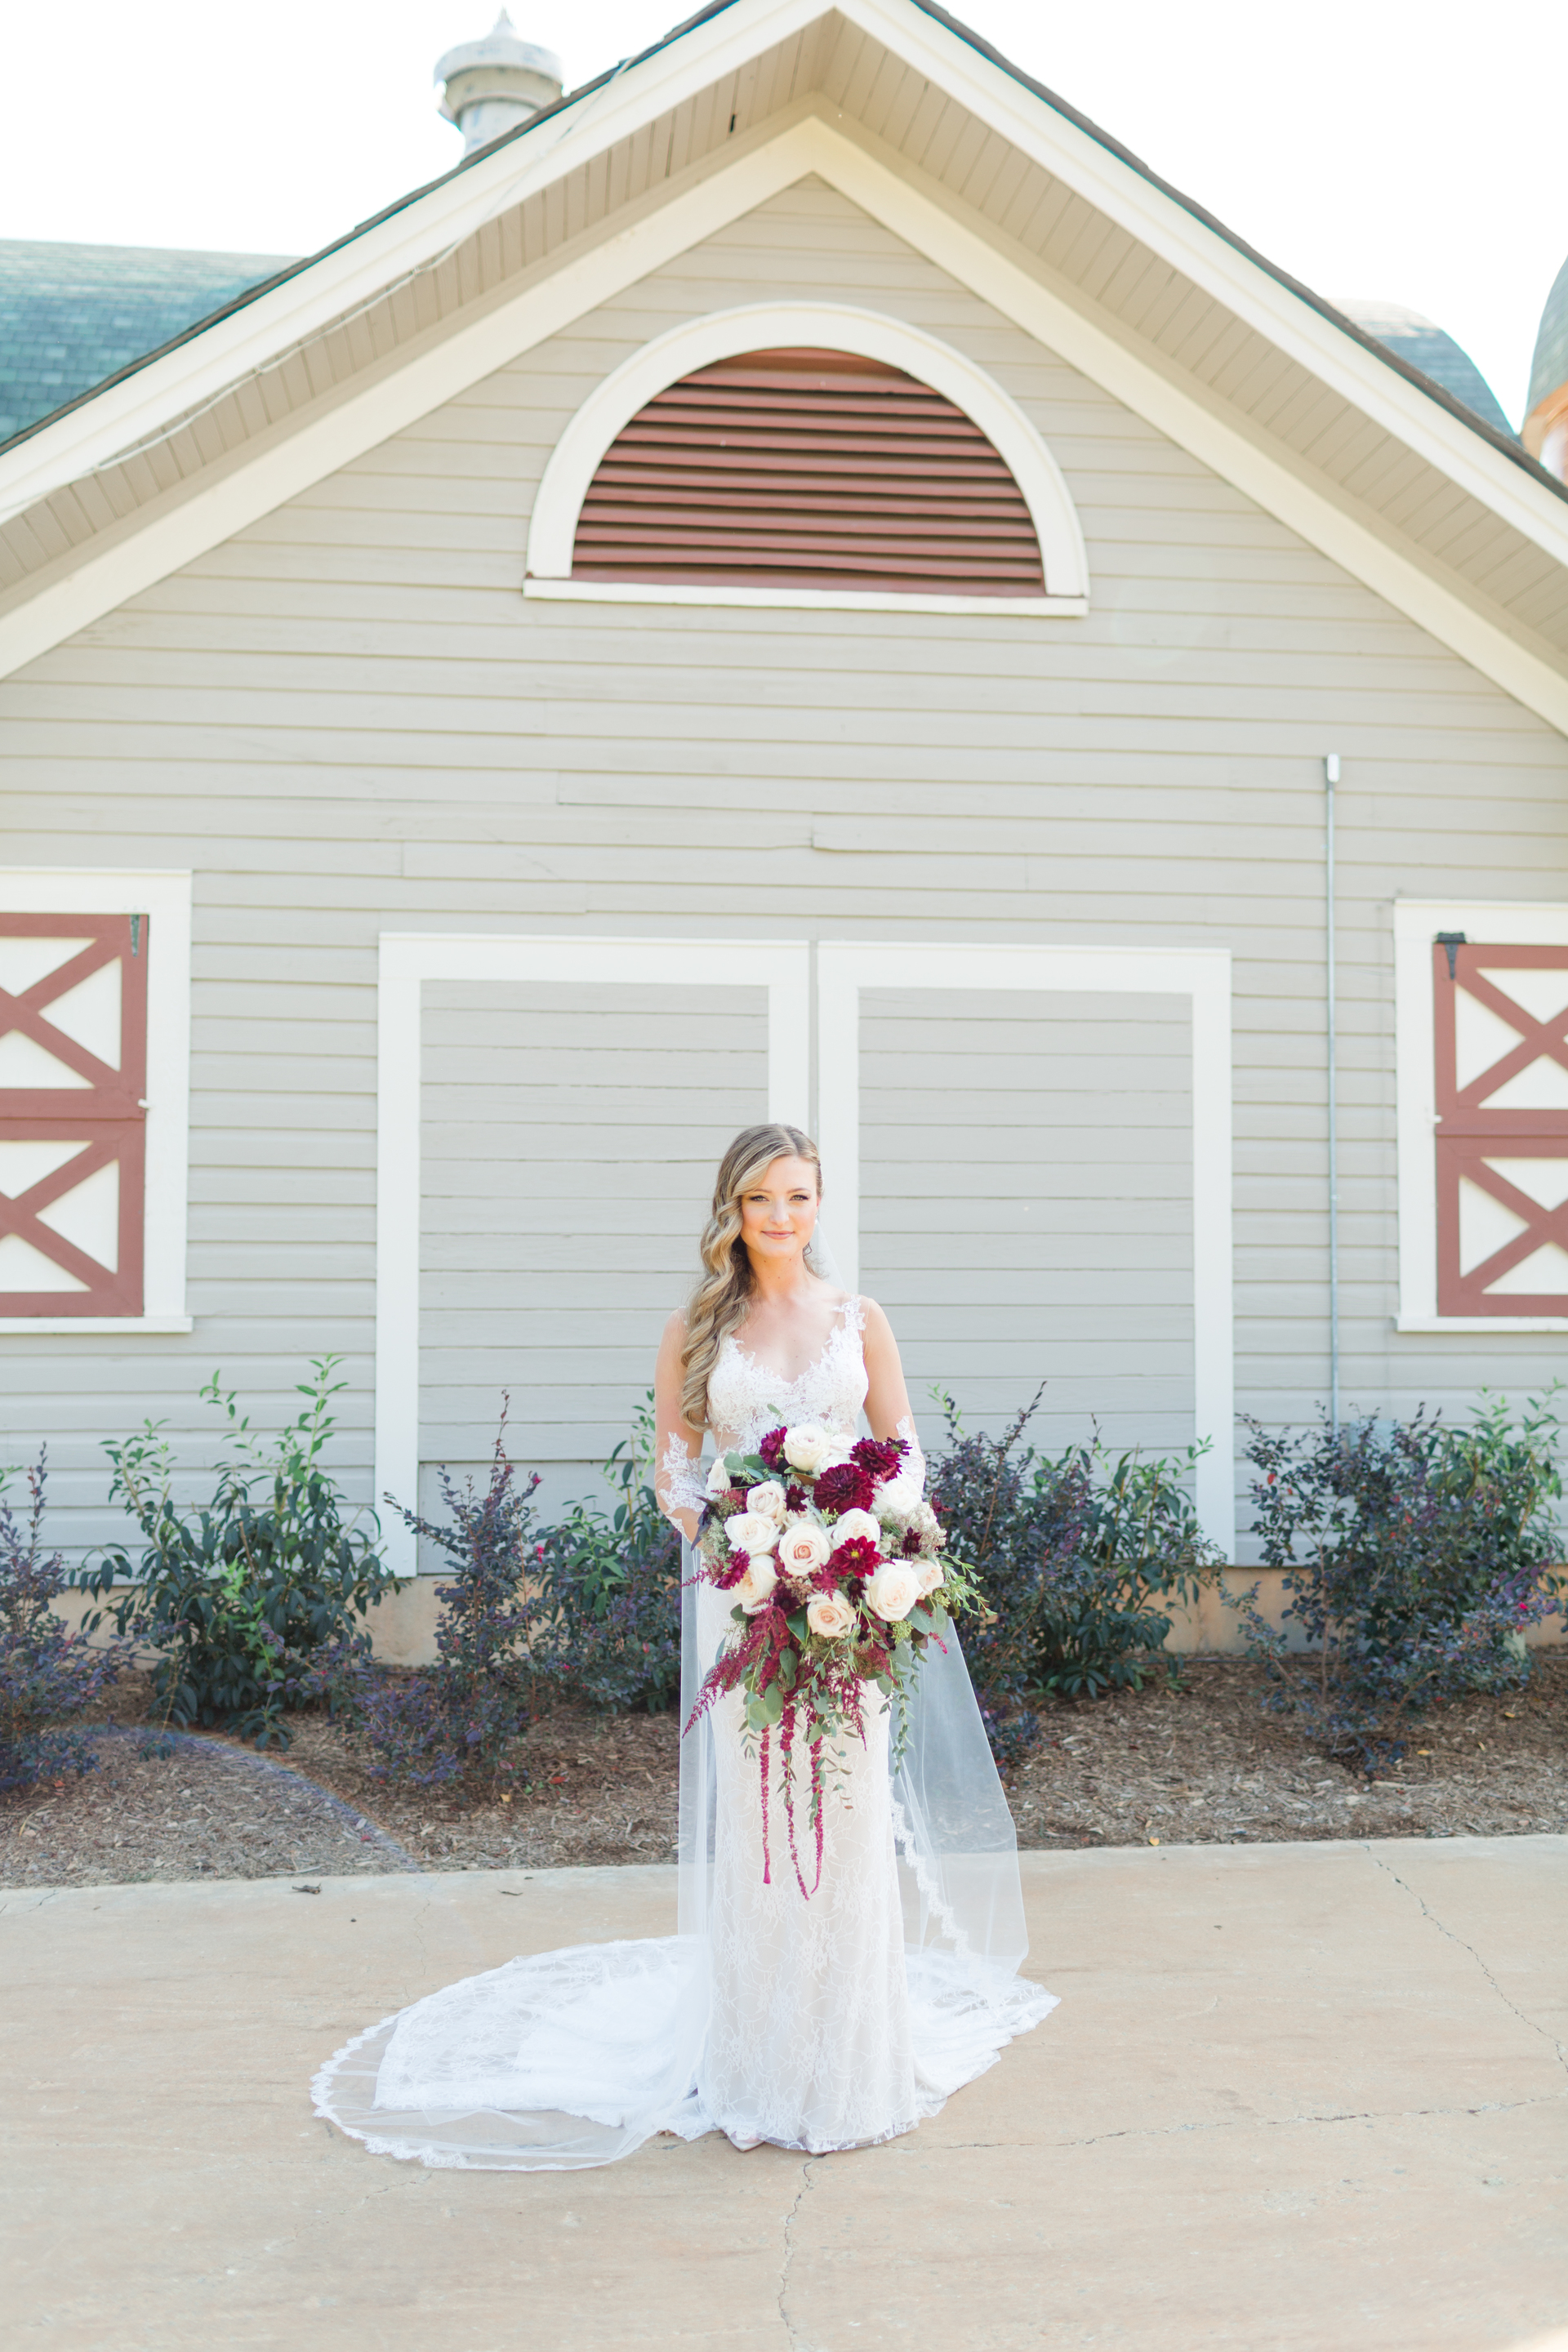 Lila + DJ Wedding at The Historic Wakefield Barn: Cor Photography Photos